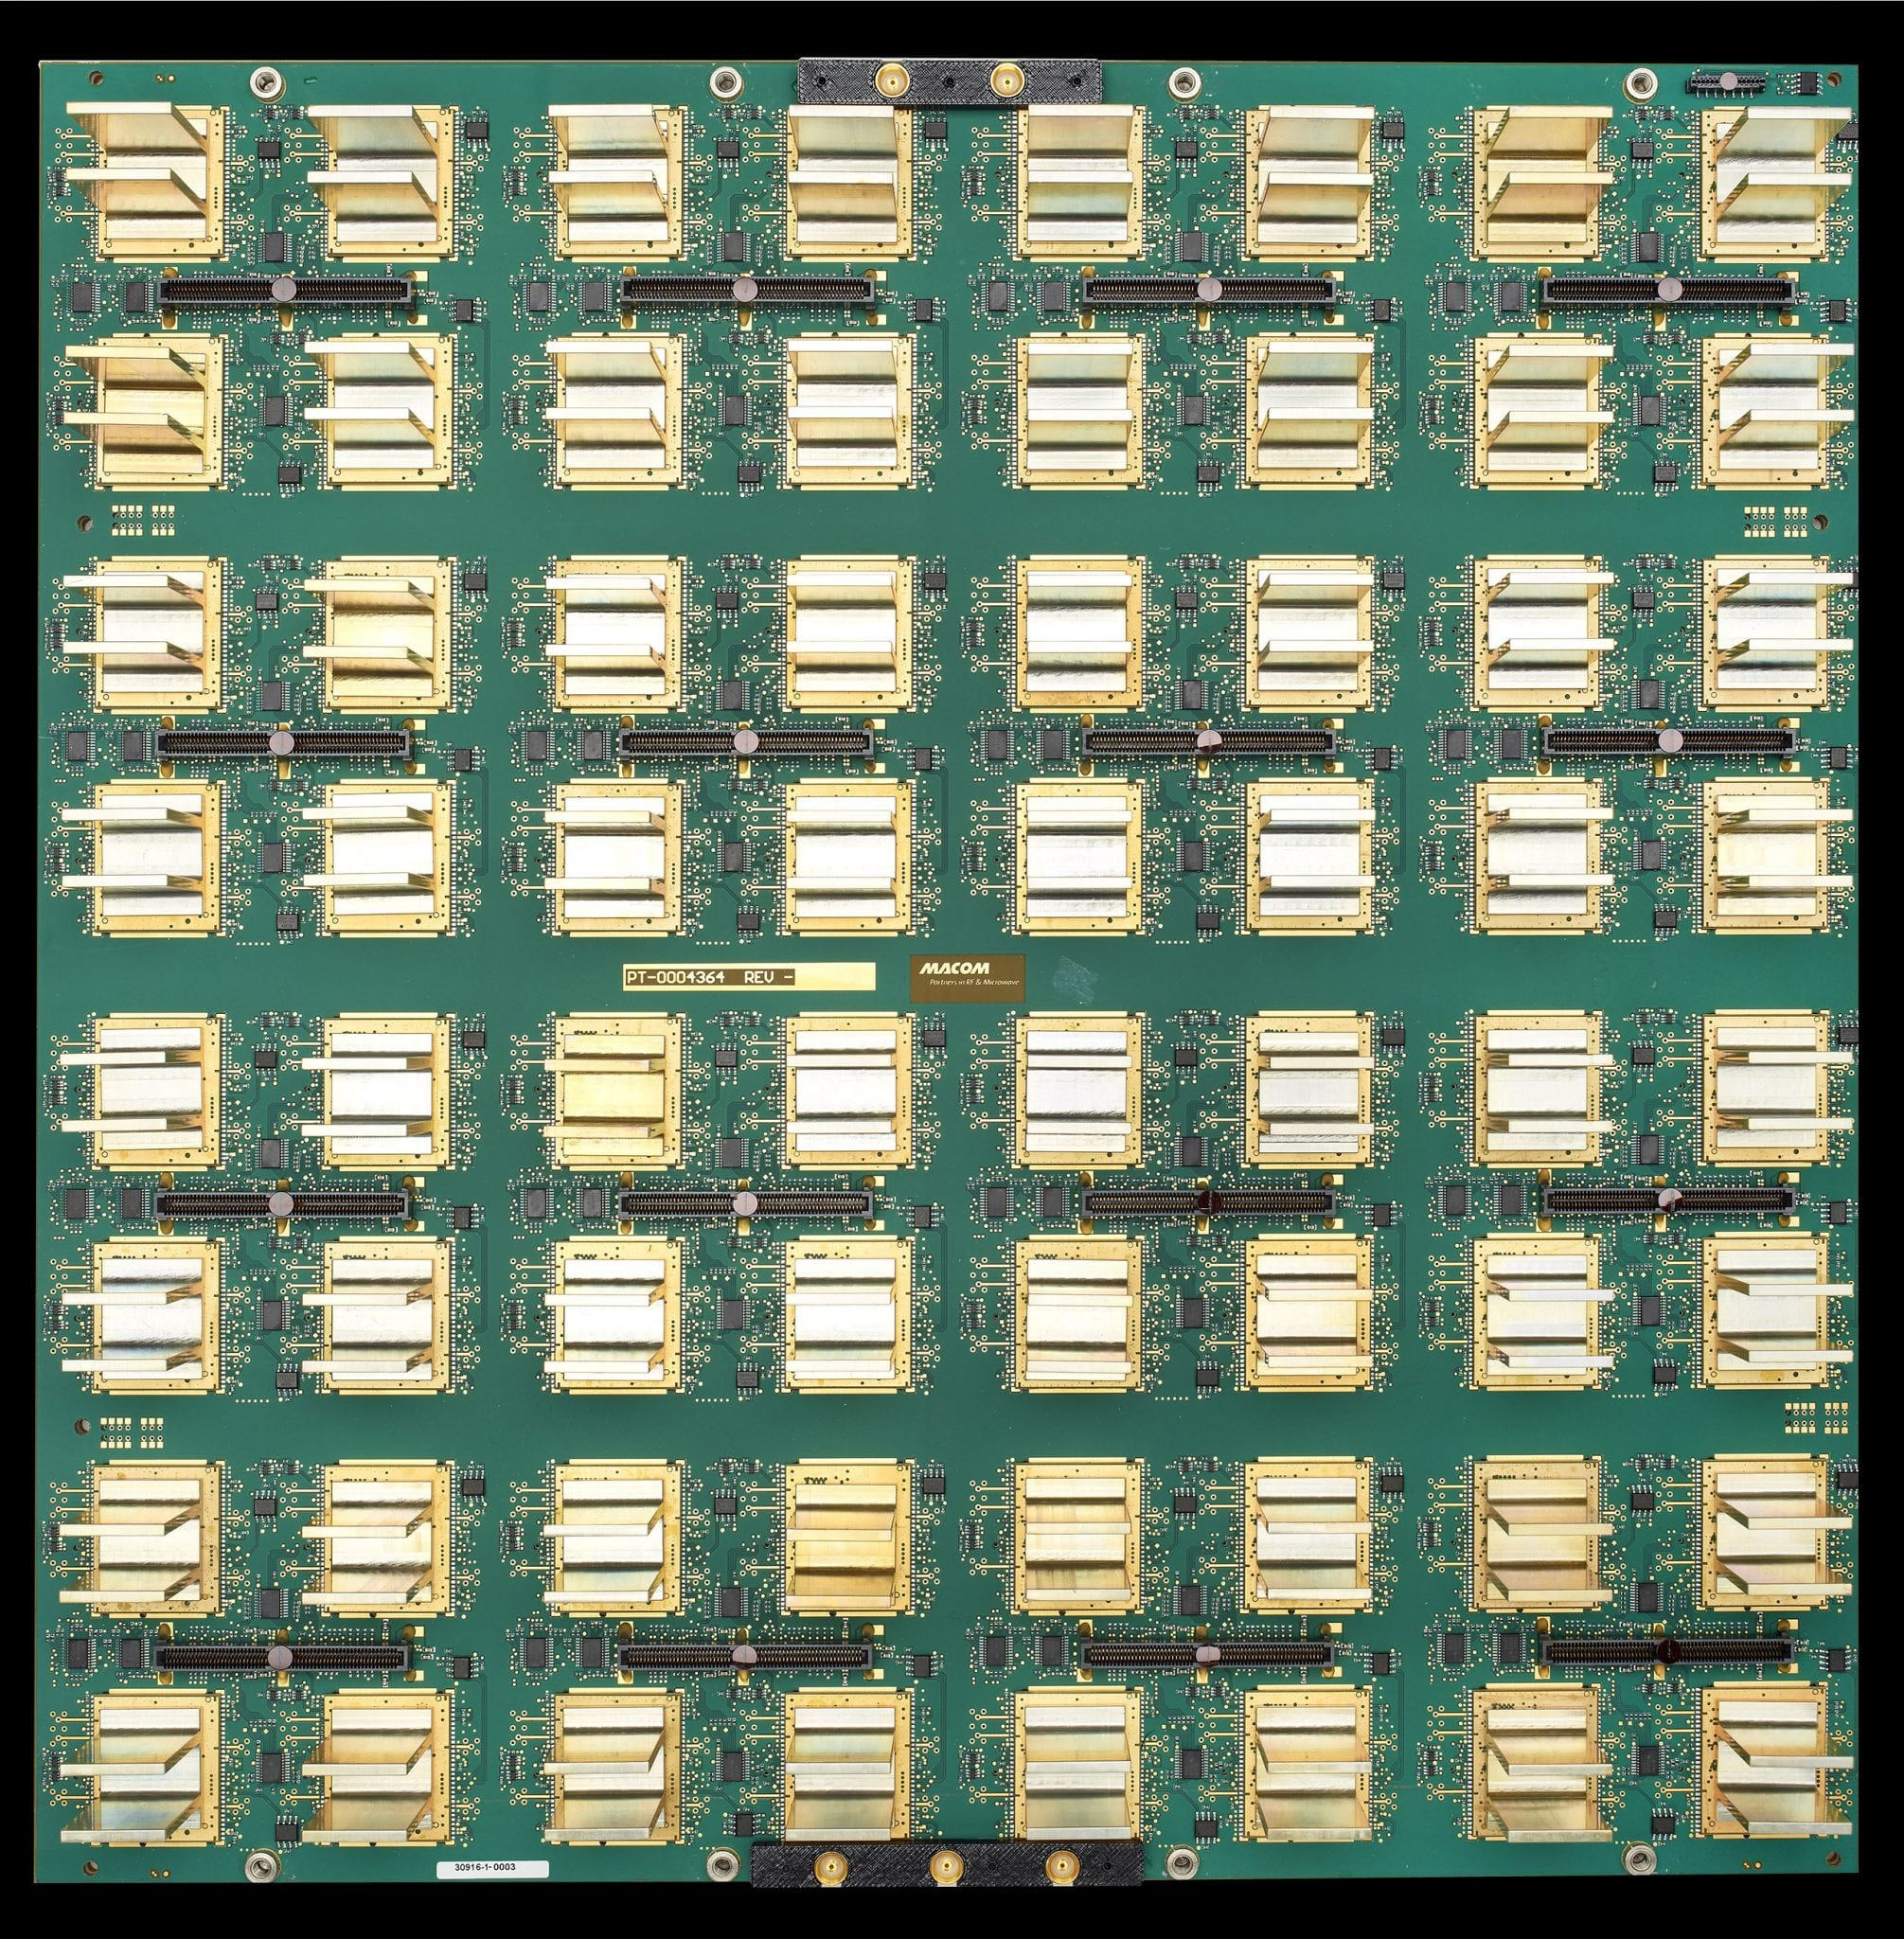 Multifunction Phased Array Radar (MPAR) technology developed by MACOM and MIT